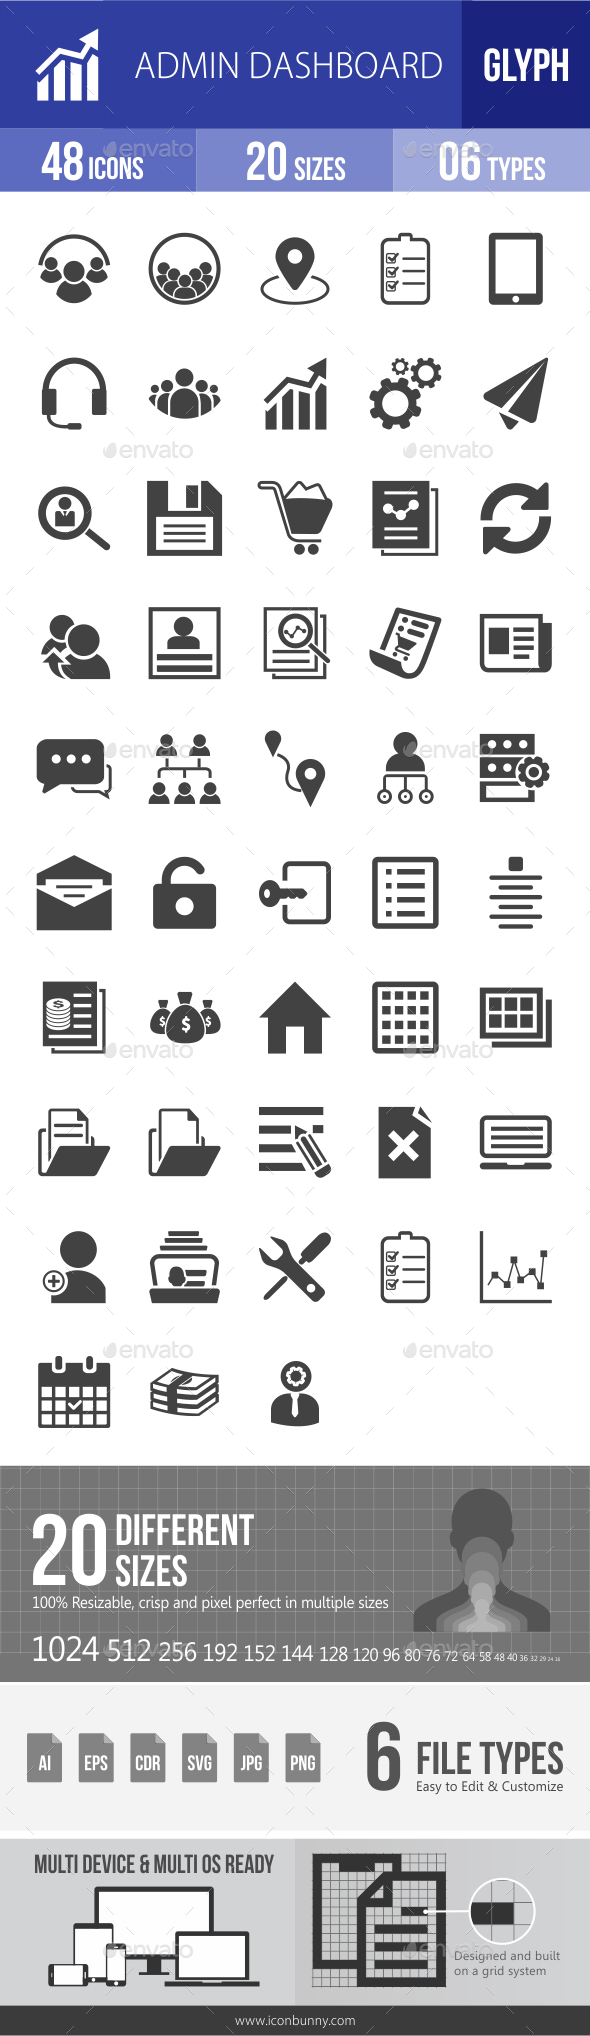 Admin Dashboard Glyph Icons